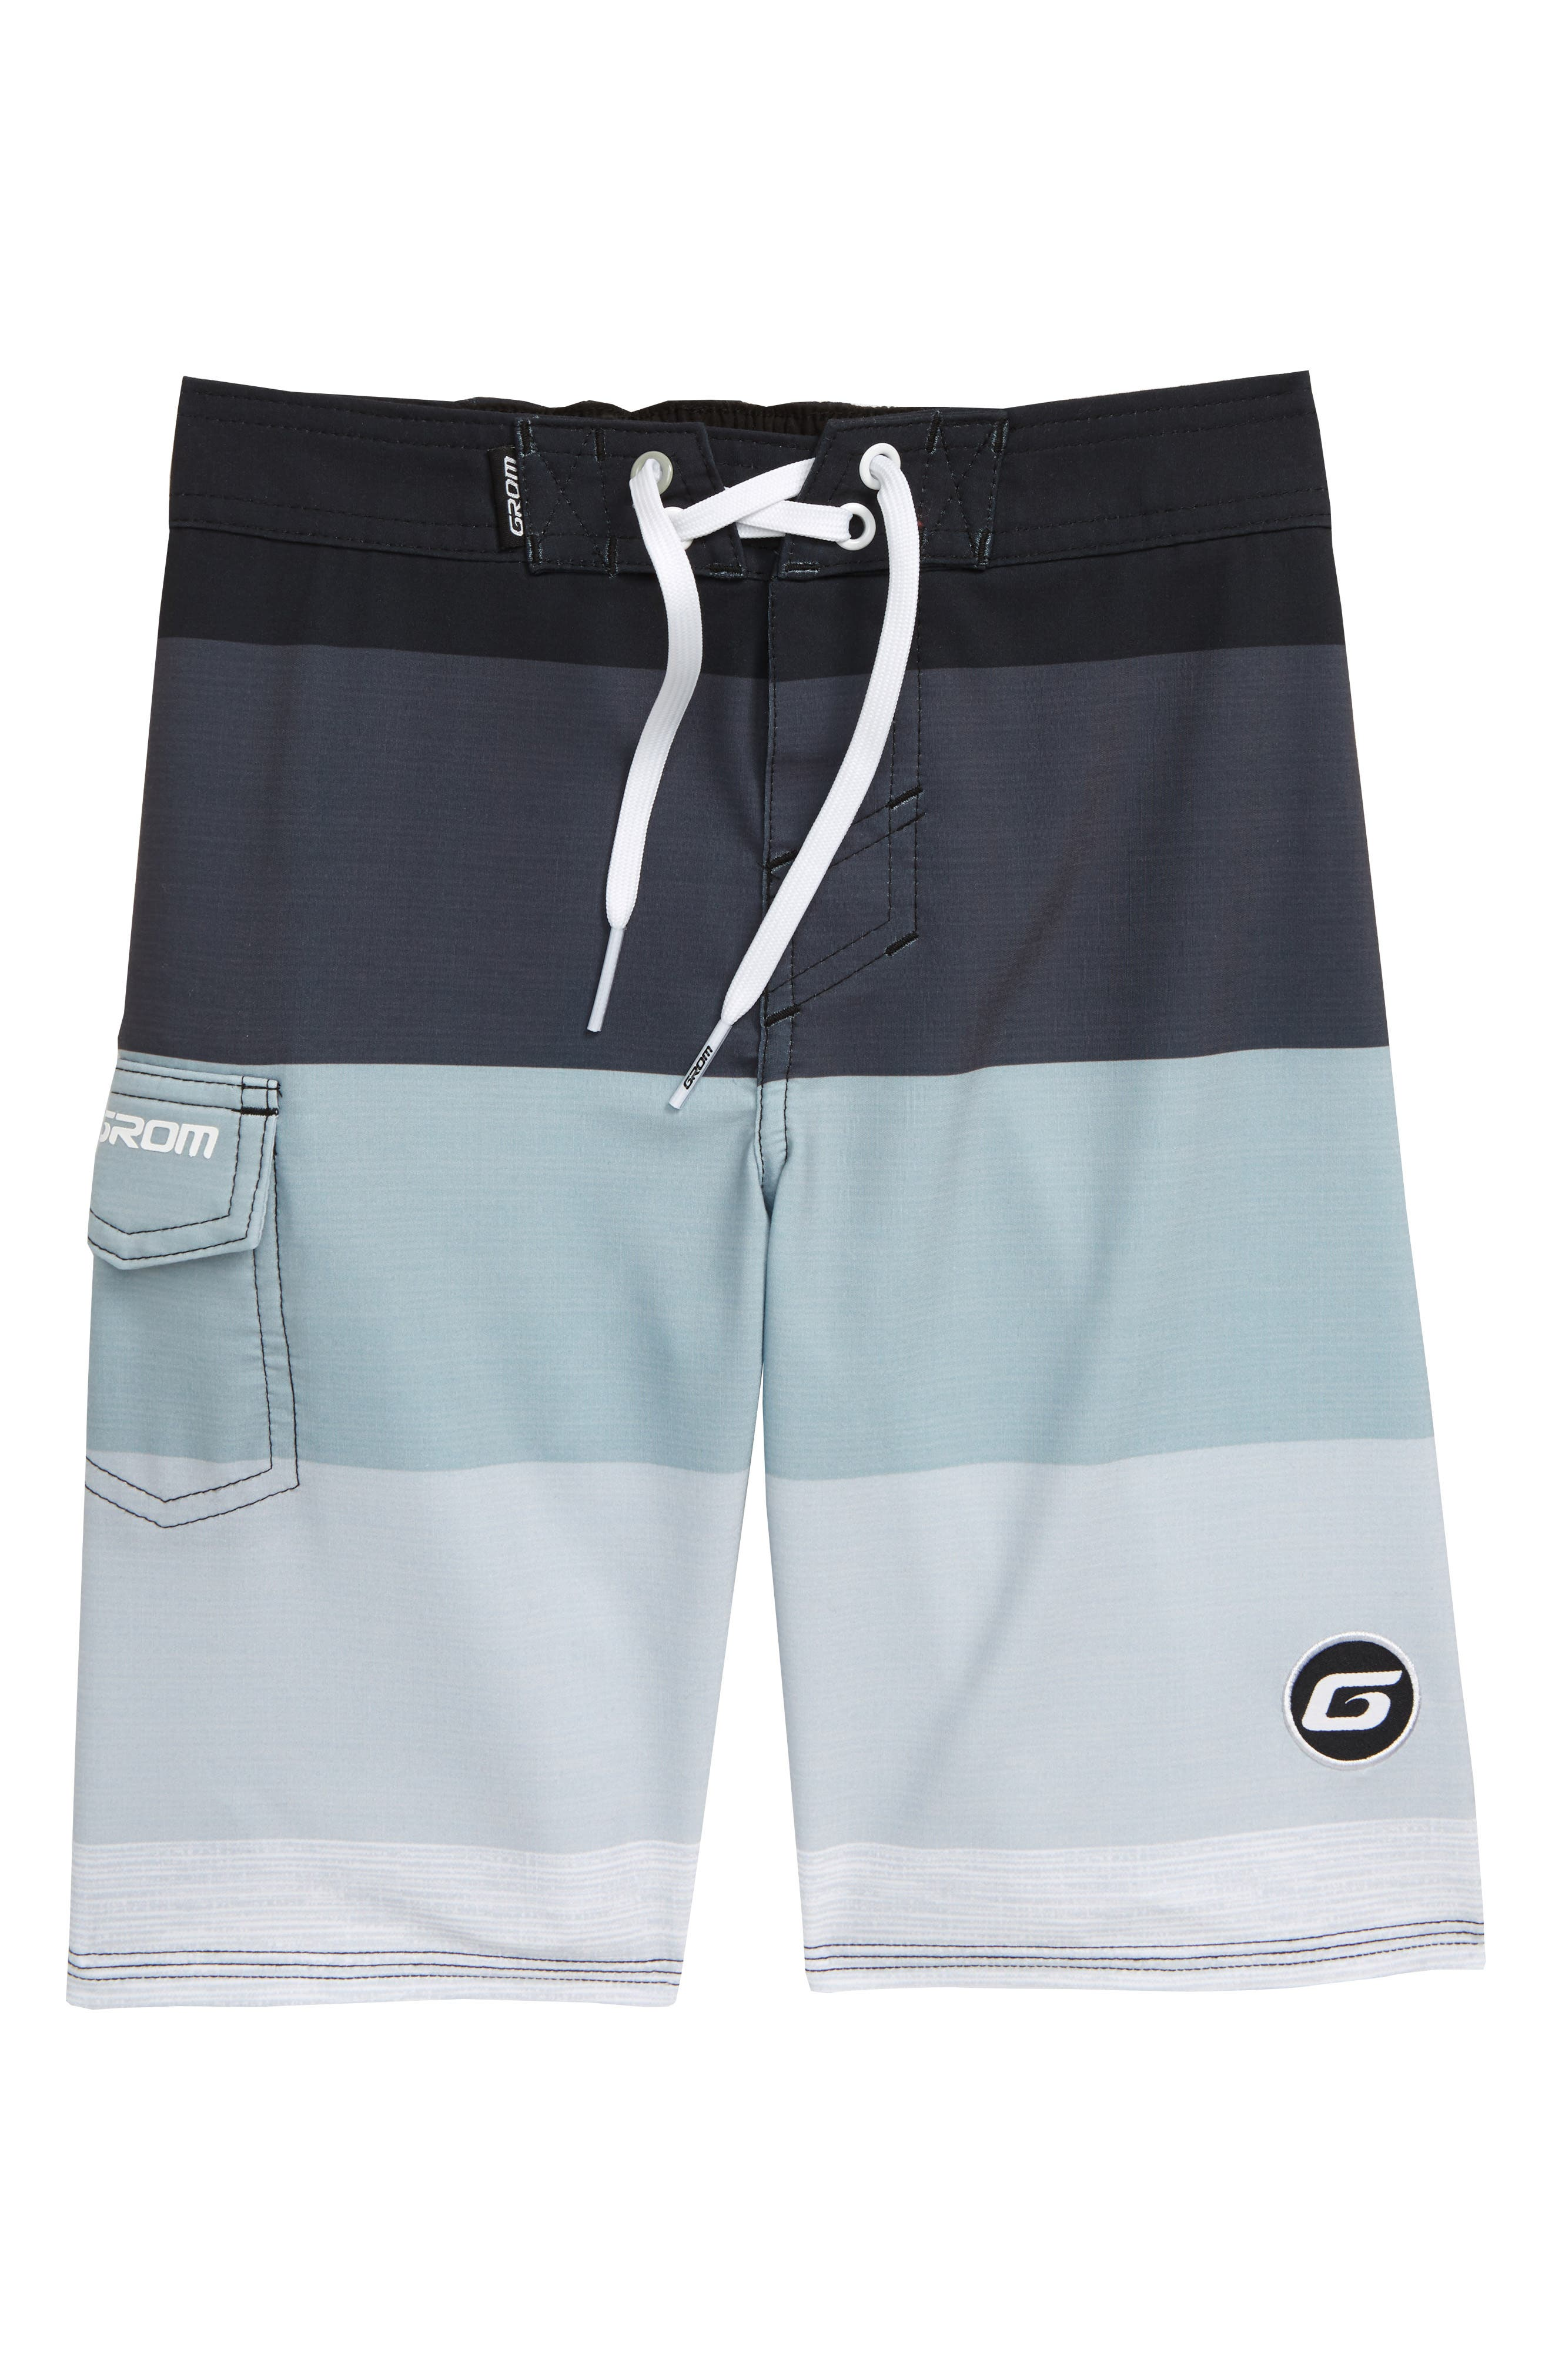 Boys Grom Scrimmage Board Shorts Size S (67)  Grey